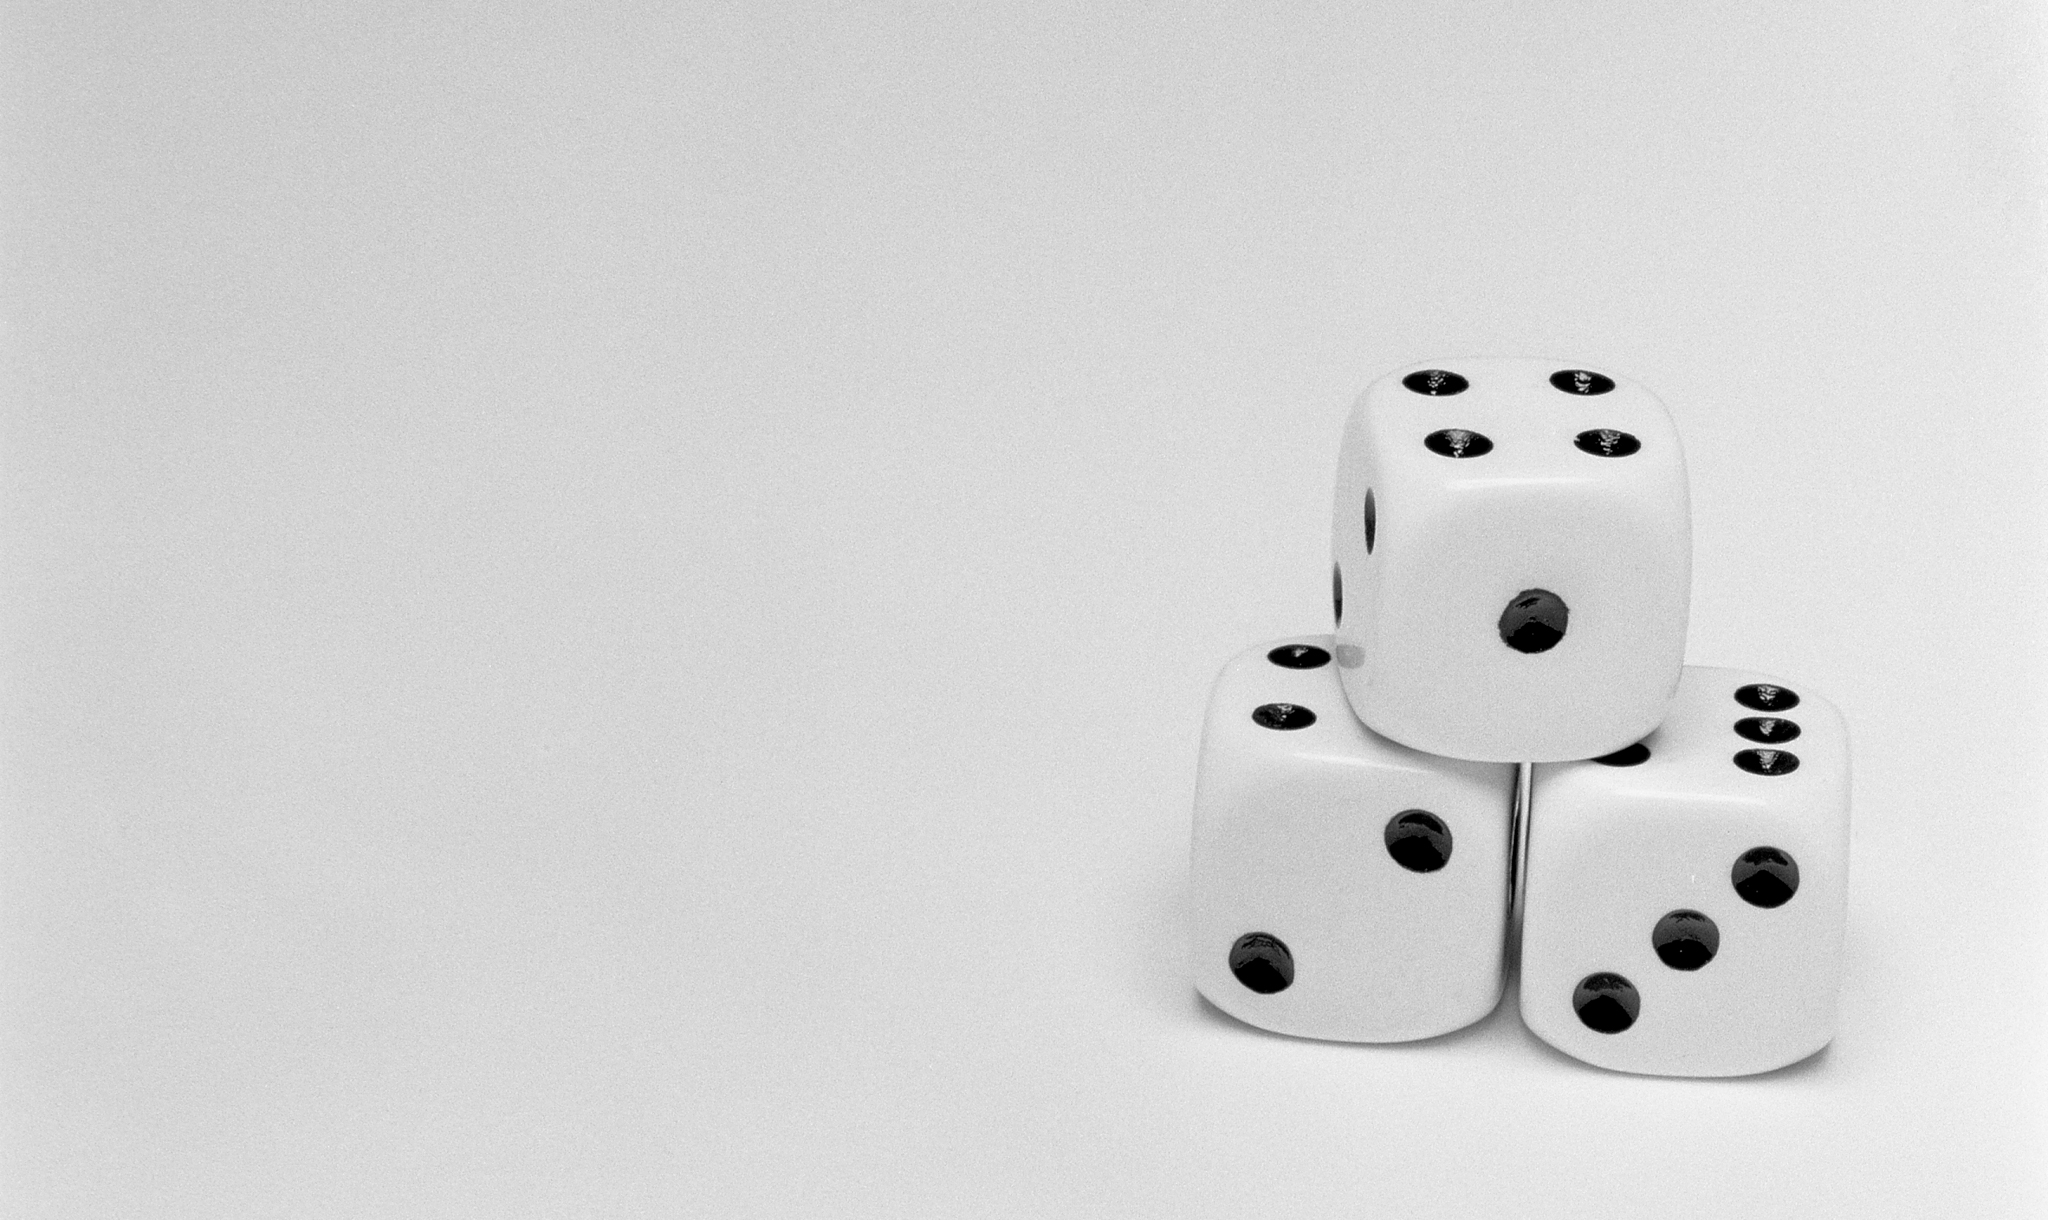 4x5_for_365_project_042_dice.jpg